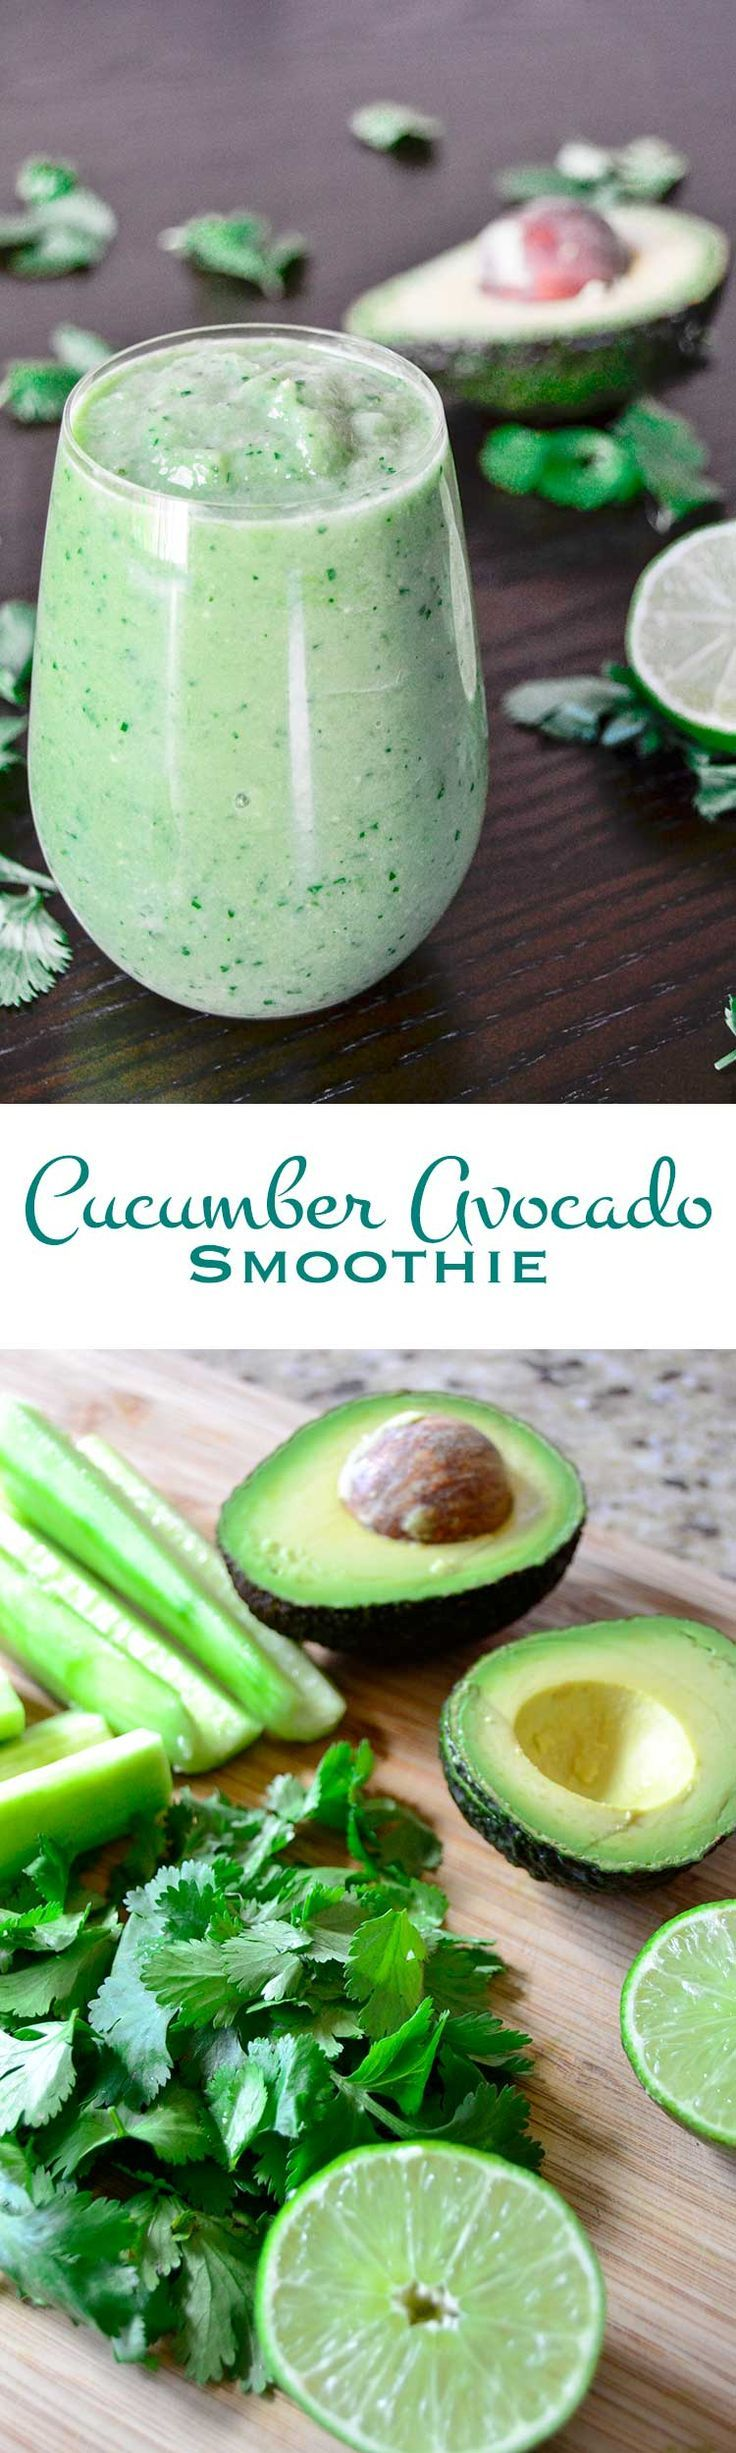 See more here ► https://www.youtube.com/watch?v=t6ic0NKYUMU Tags: lose belly fat in 7 days, how lose belly fat, not losing belly fat - Cucumber Avocado Smoothie PIN: Buttery avocado, crisp cucumber, earthy cilantro, and bright lime juice combine to make this cucumber avocado smoothie a great way to start your day. #exercise #diet #workout #fitness #health